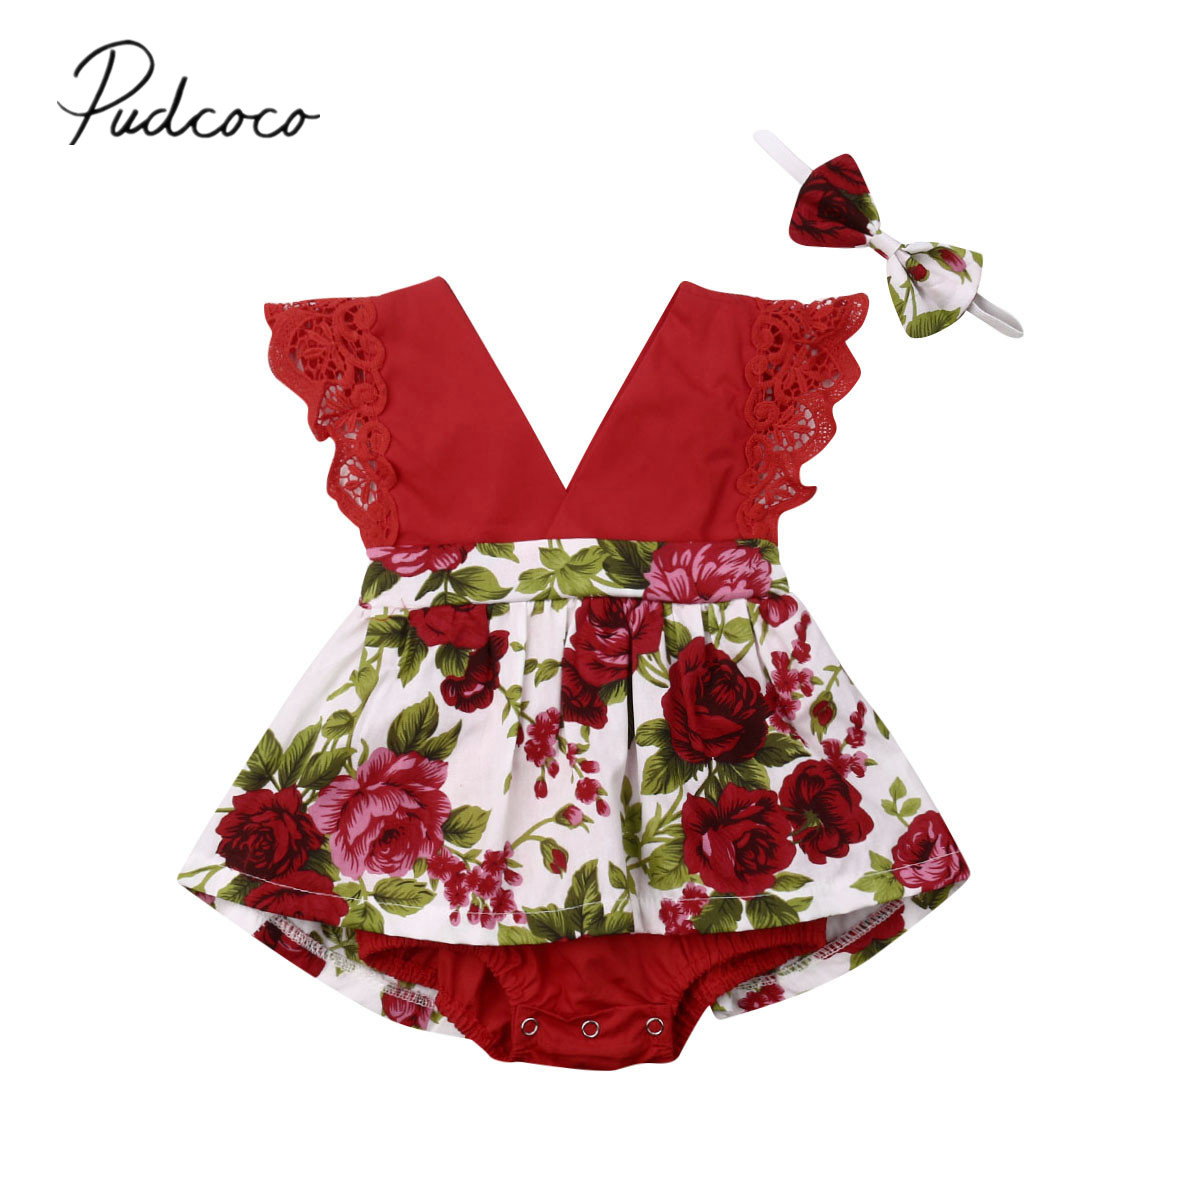 Infant Girls Summer Princess Dress Outfit Floral Print Lace Romper Tops and Skirt Clothes Suit Set with Headband